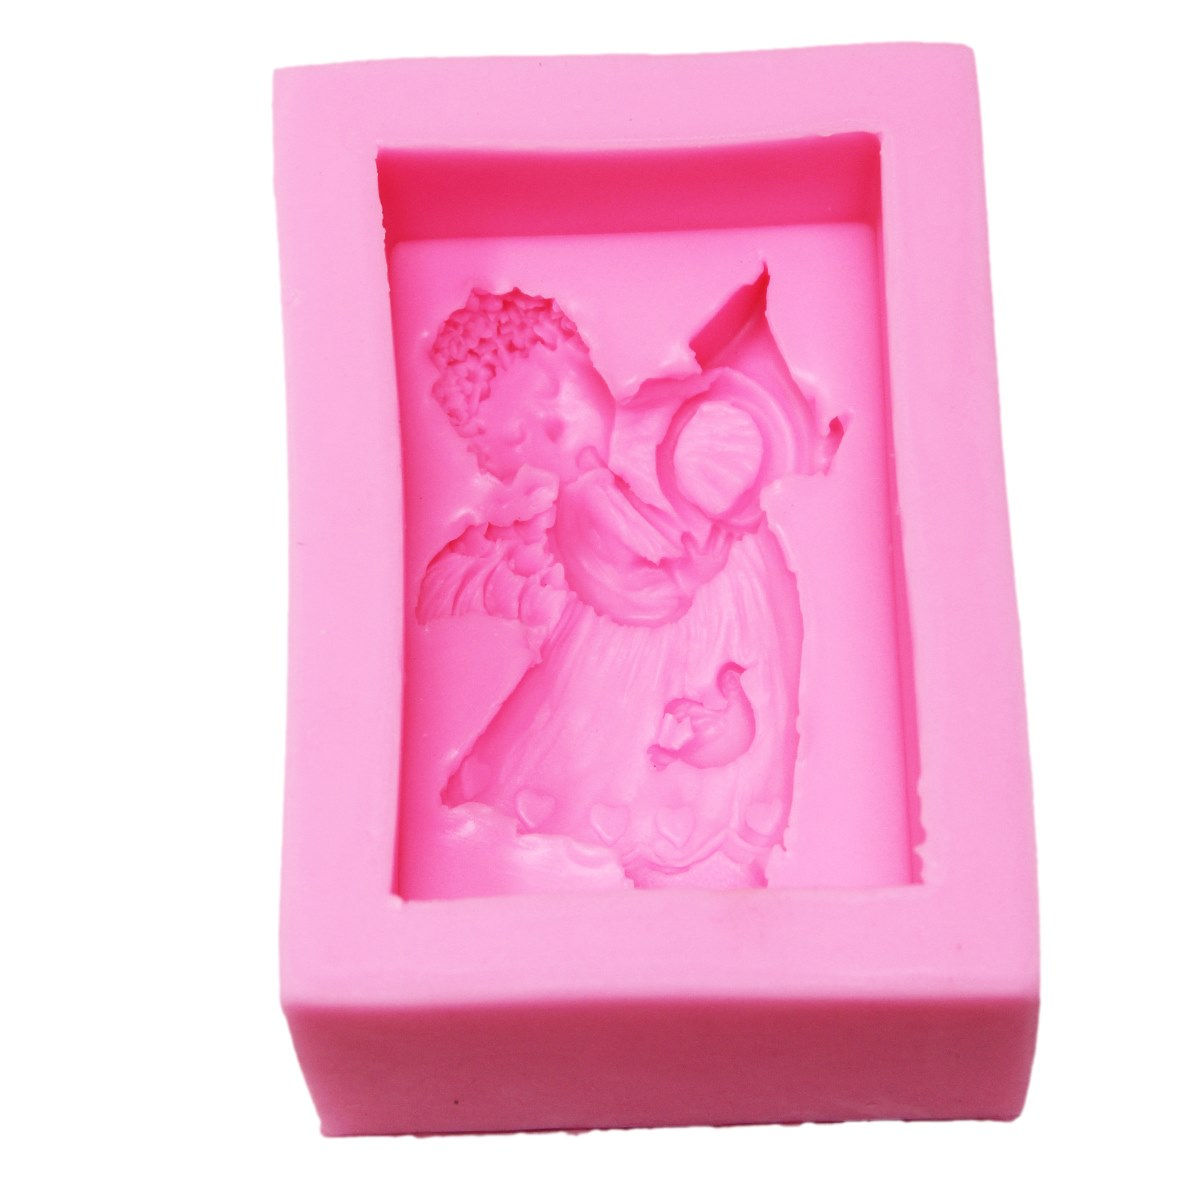 Resin Silicone Mould Musical Cupid Design